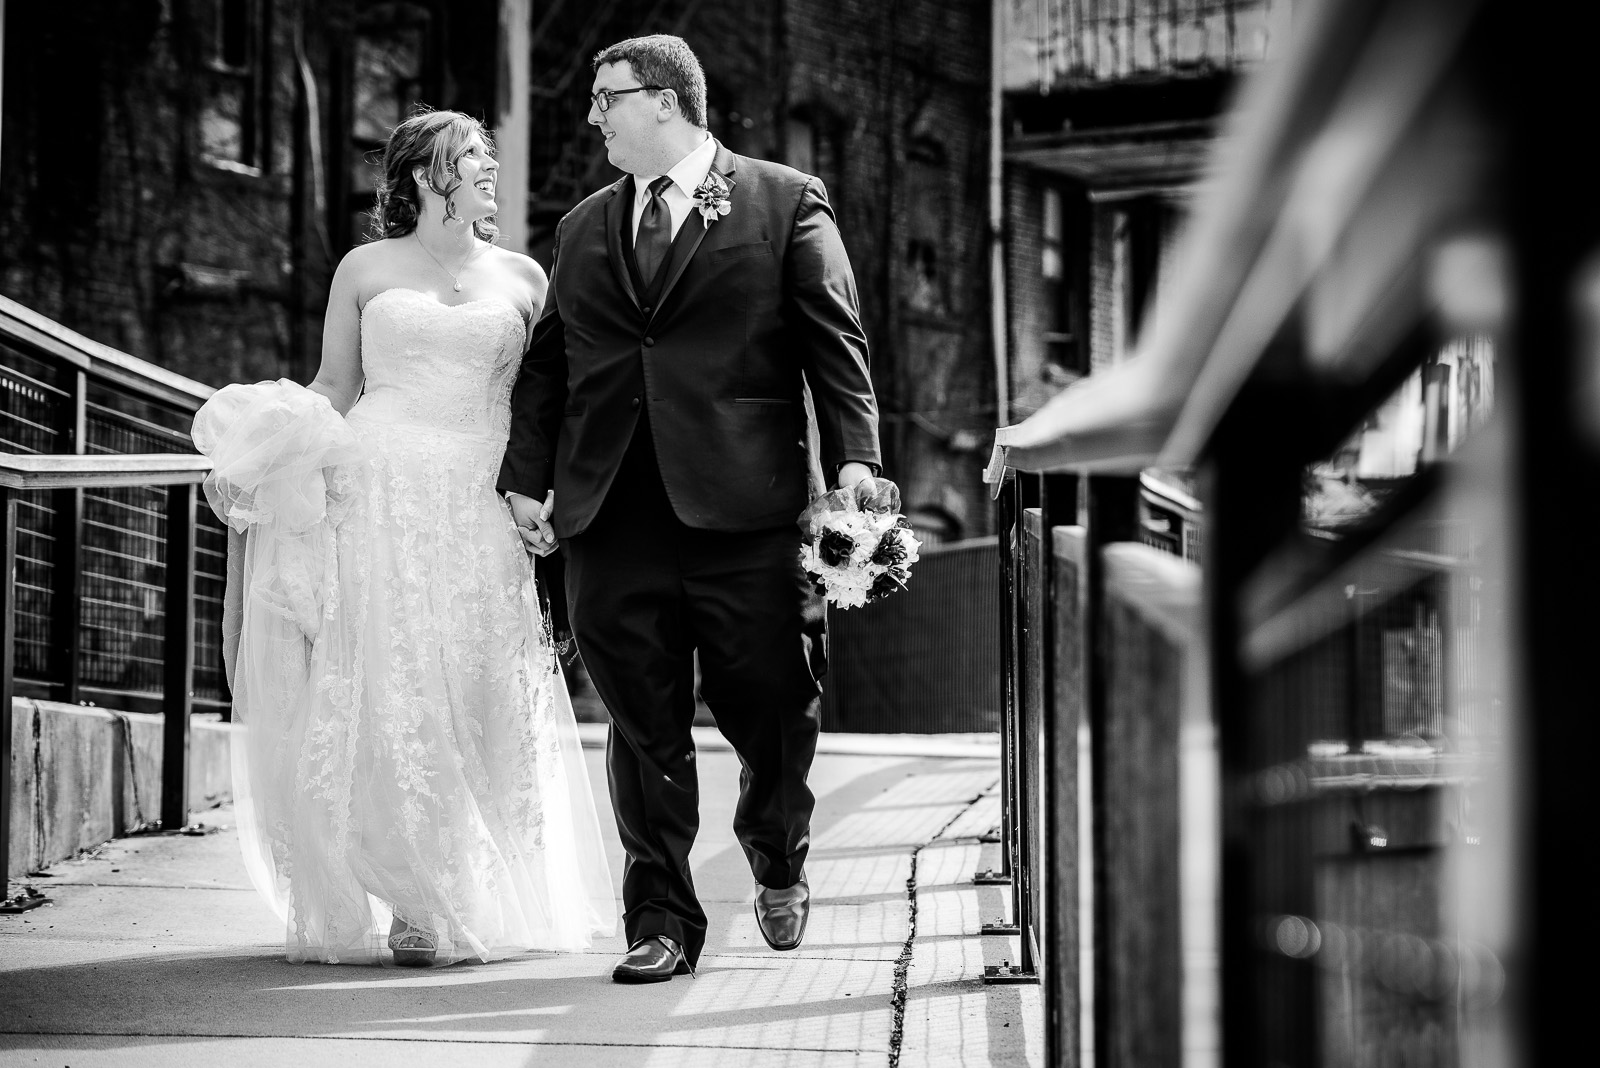 Eric_and_Christy_Photography_Blog_Wedding_Karen_Nick-36